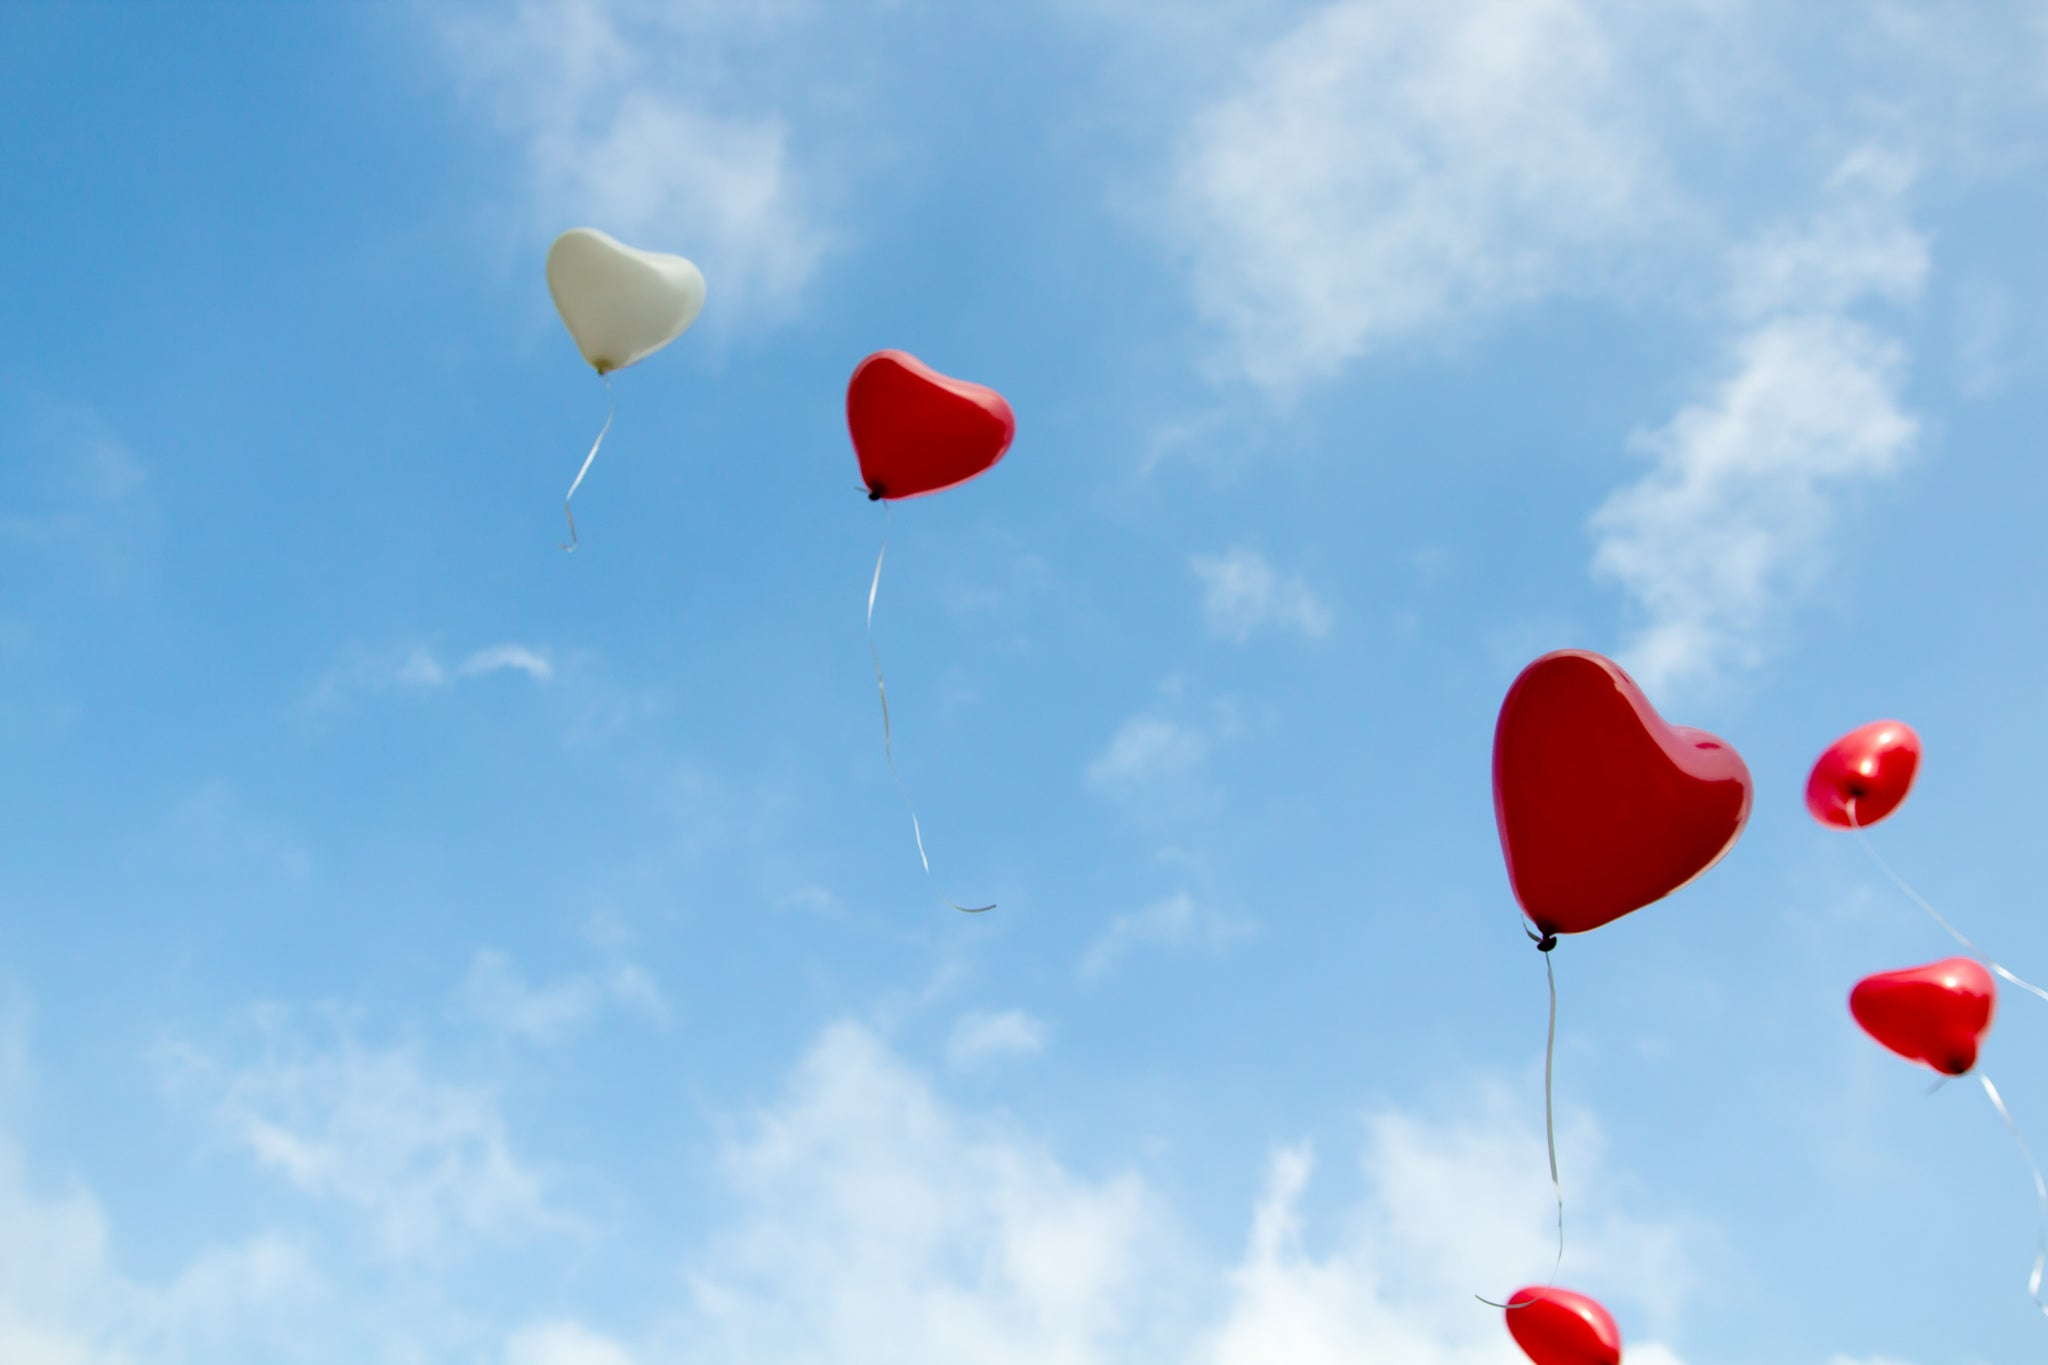 Heart balloons floating in blue sky